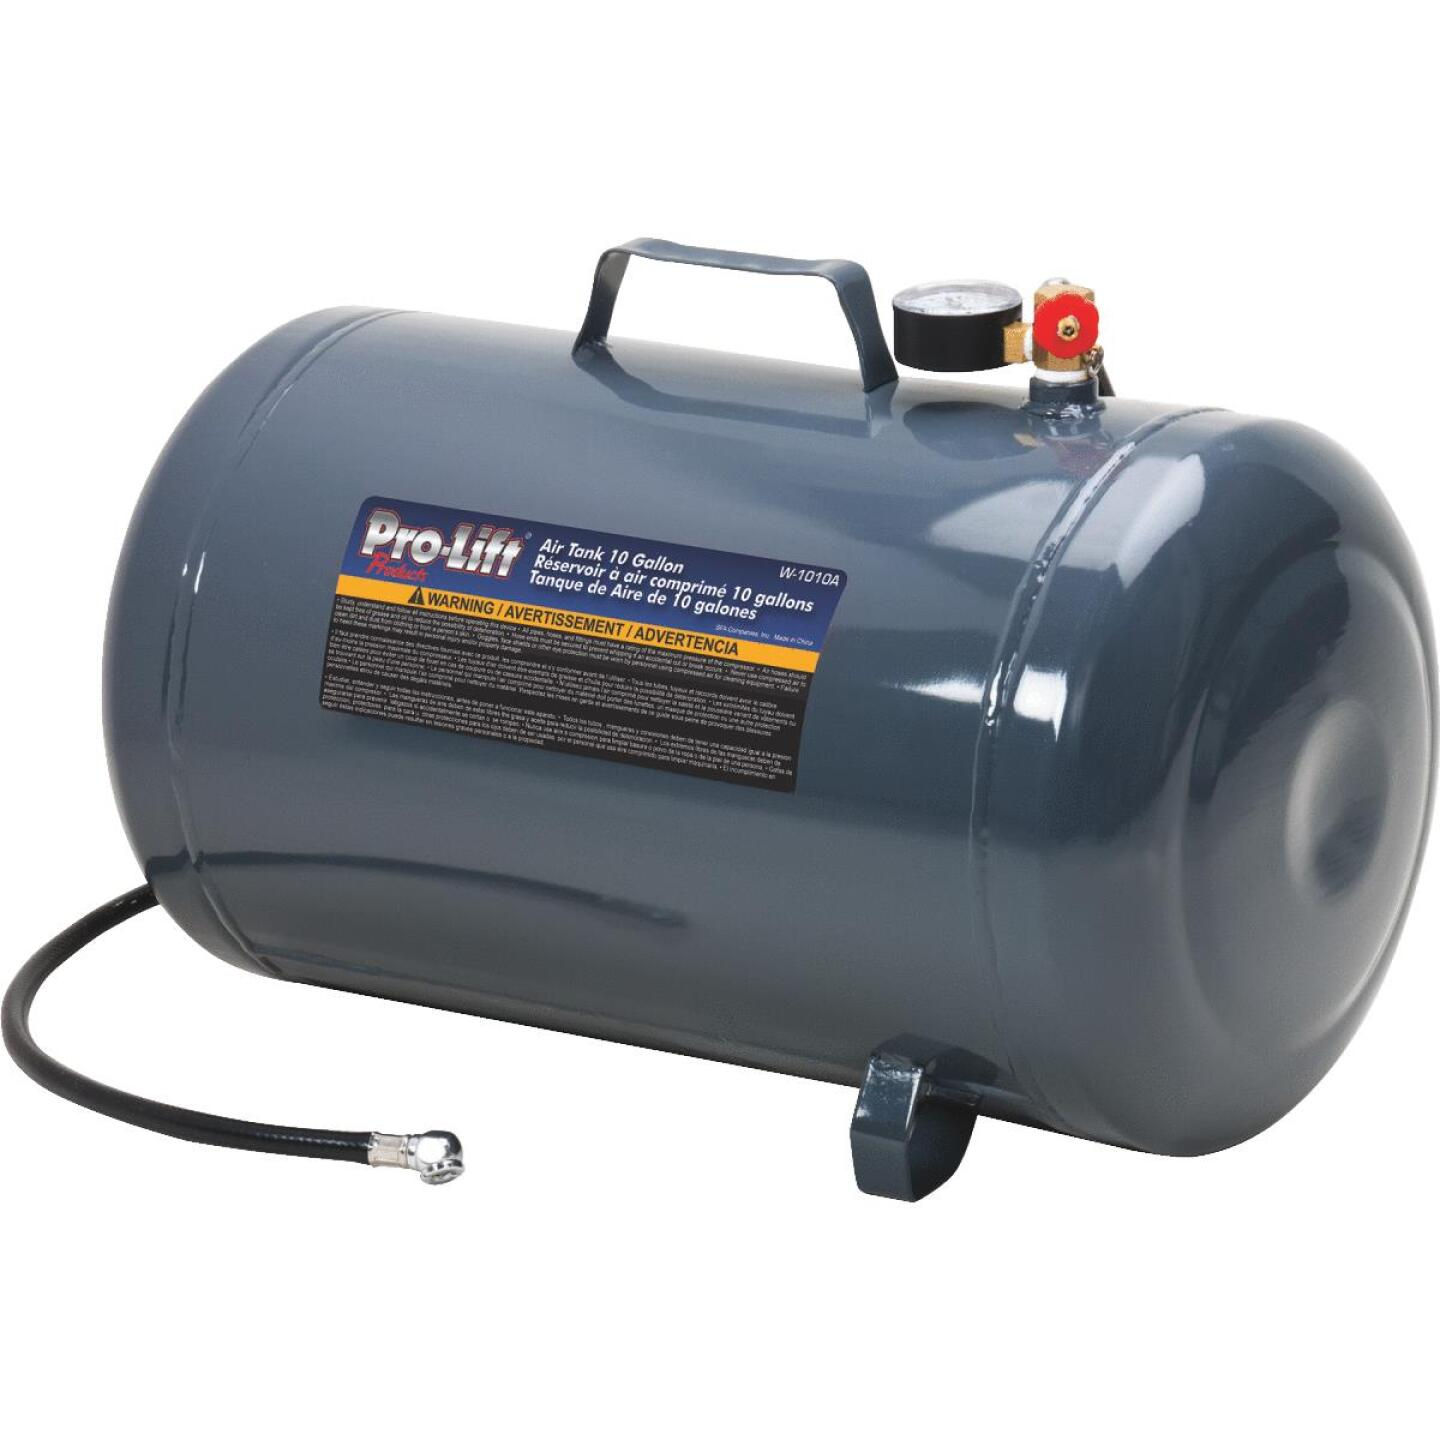 Pro-Lift Air Tank, 10 Gallon Image 1